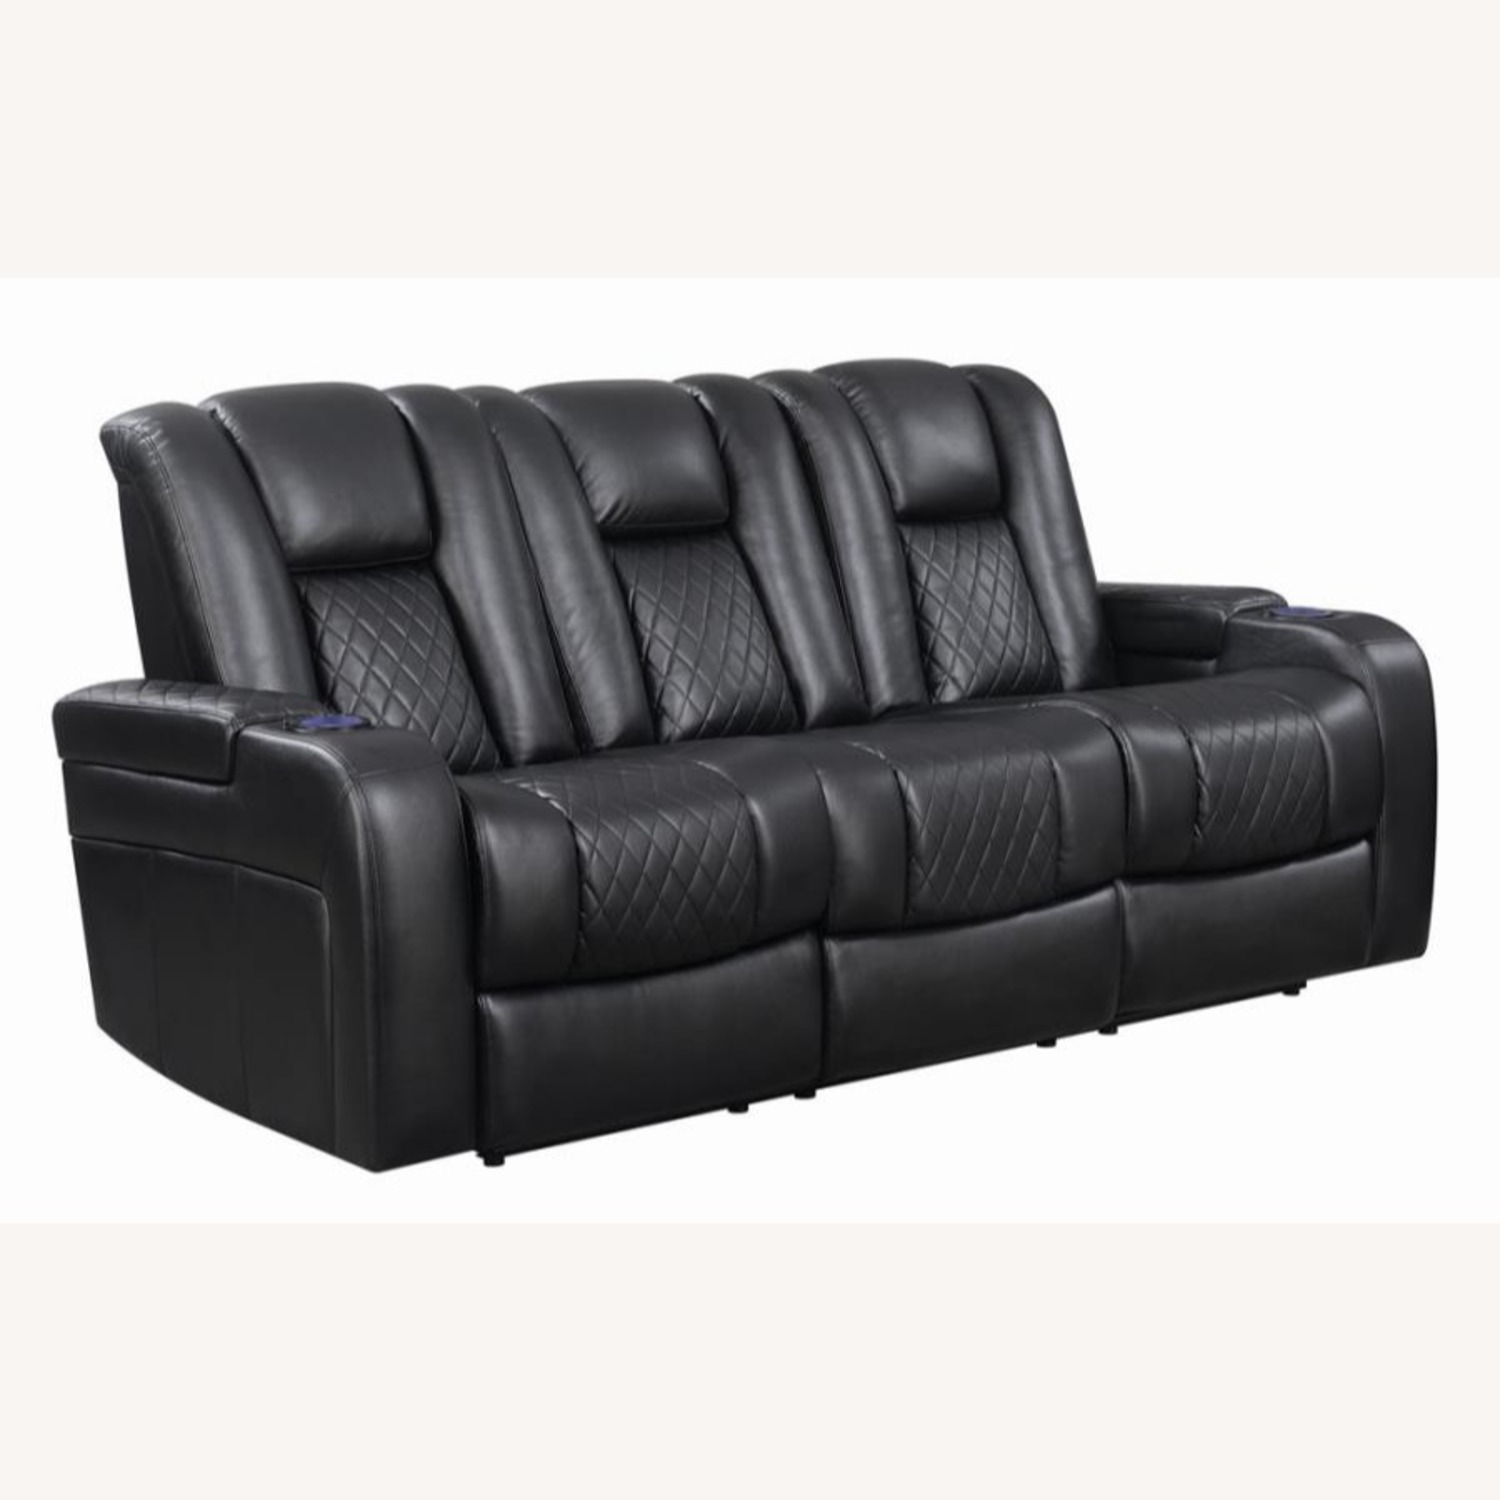 Power Sofa In Black Leather W/ LED Cupholder - image-0